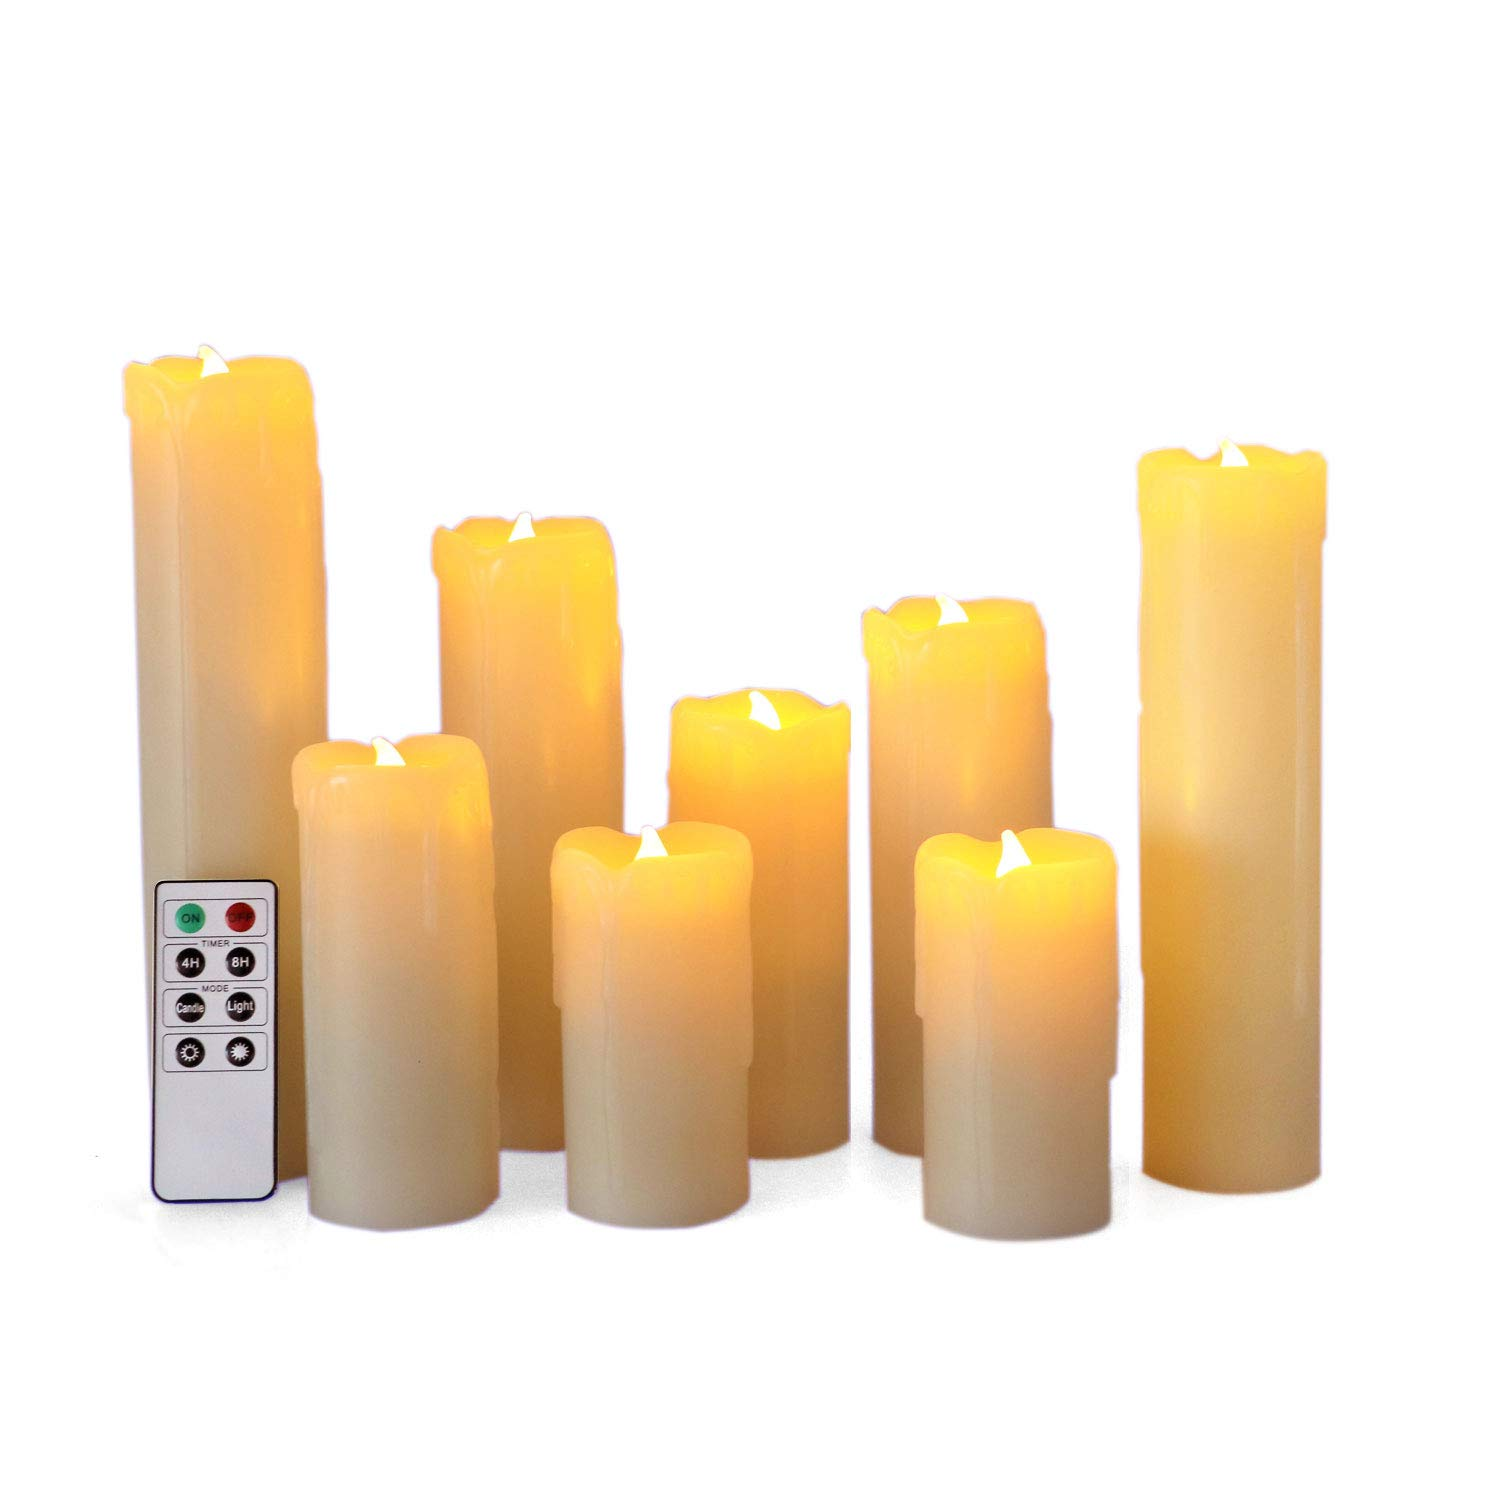 Set of 8 Flameless LED Candles with Timer, Battery Operated Candles with Remote Control, Ivory Wax Drip Finish, H4''/5''/6''/7''/8'', Long Lasting Batteies Included